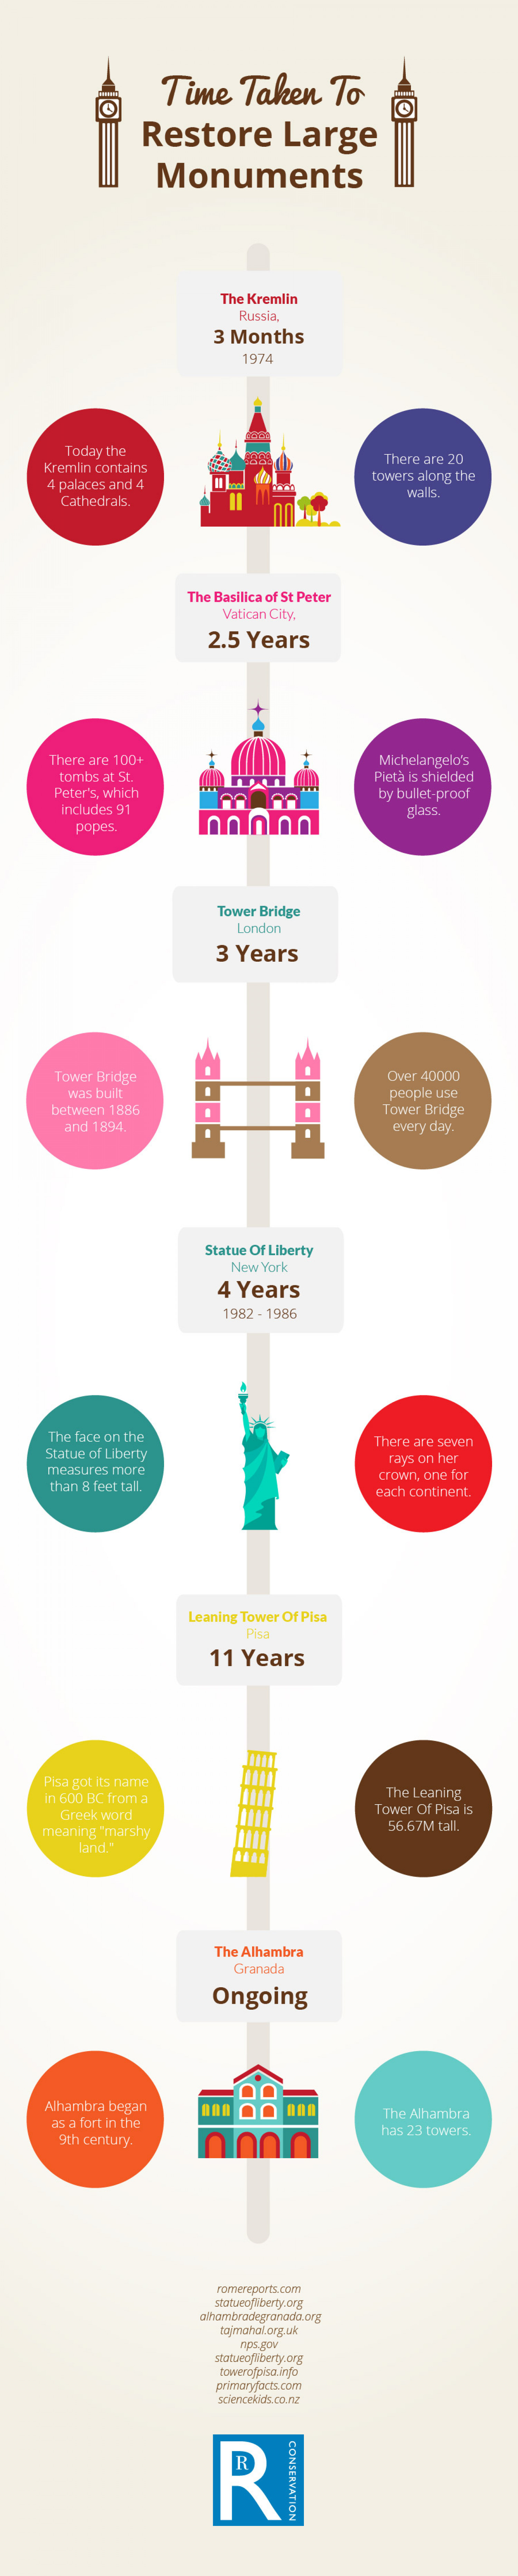 Time Taken To Restore Large Monuments Infographic